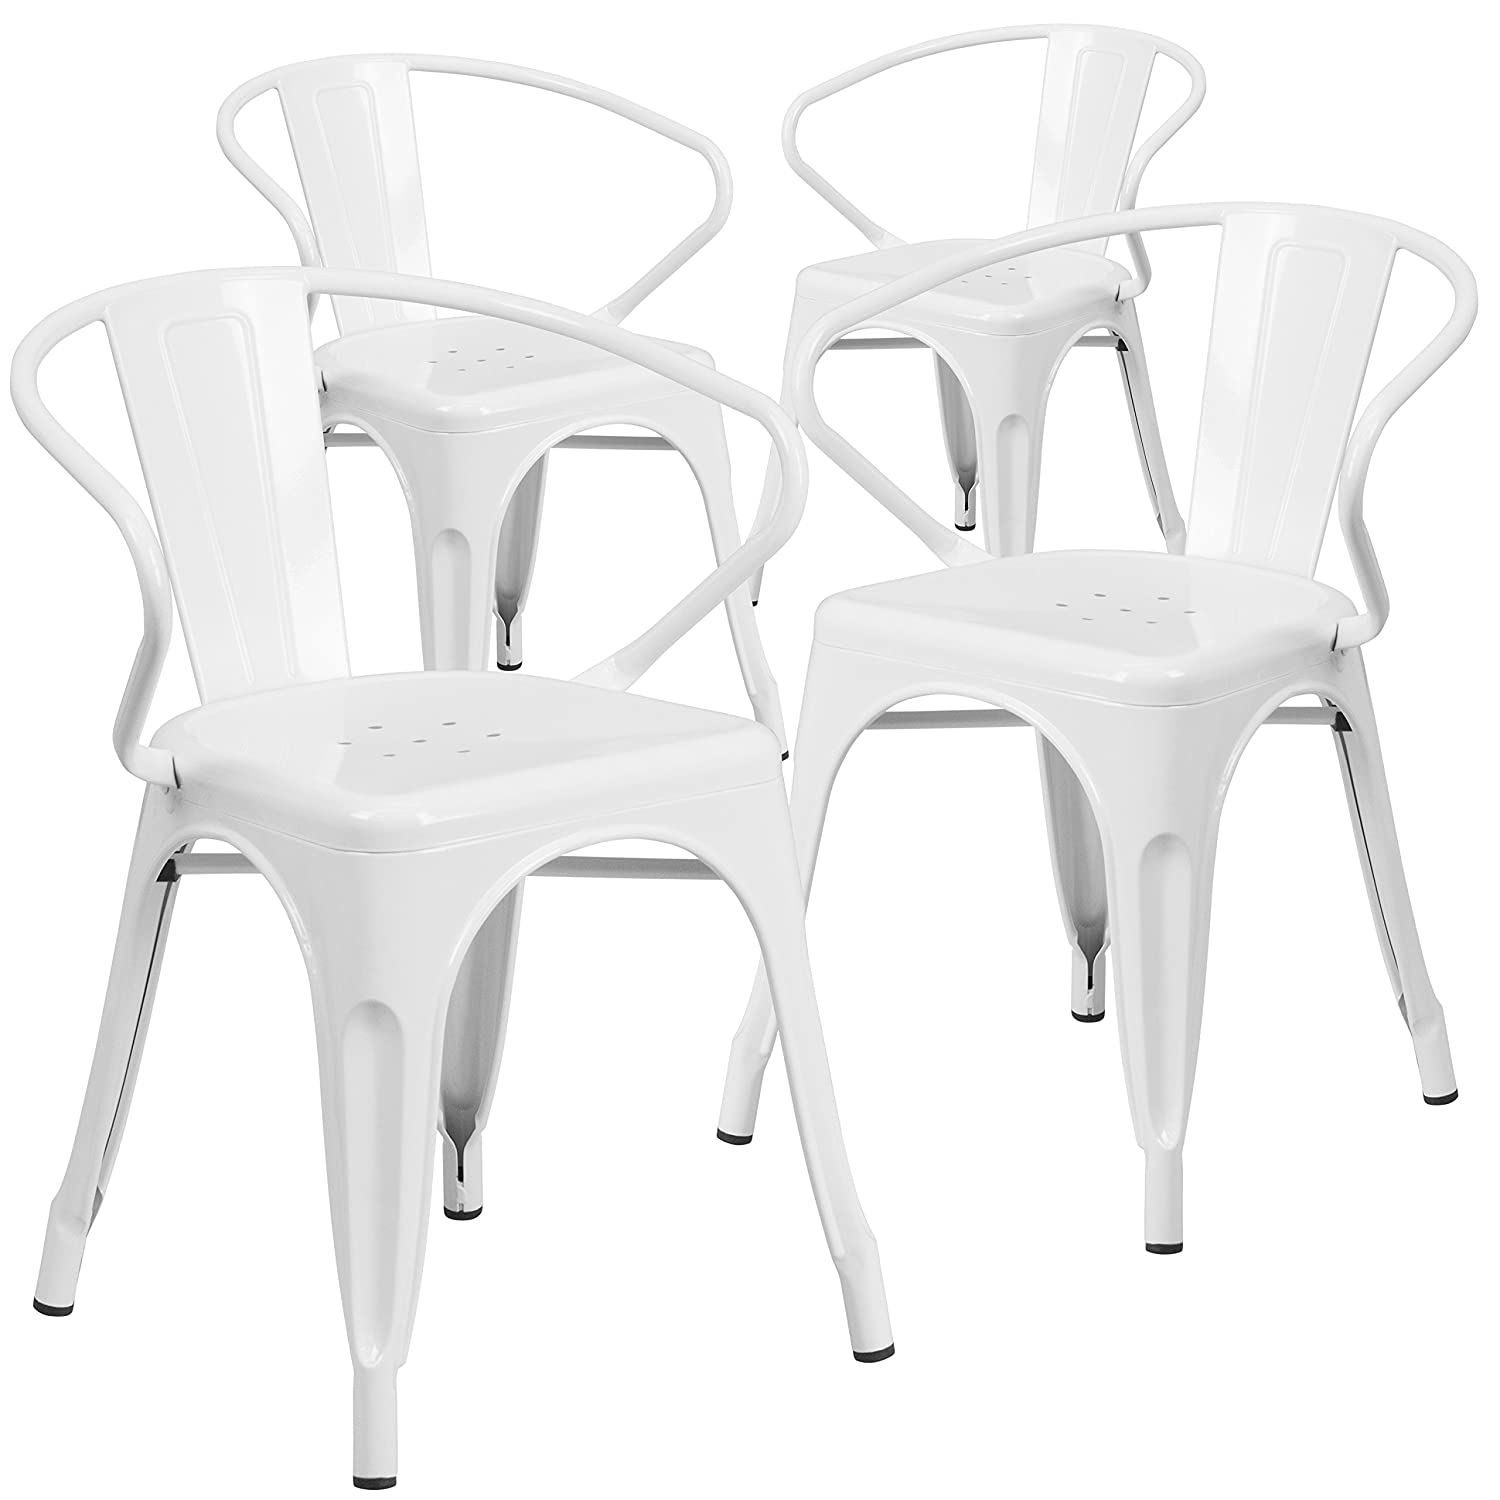 Amazon com flash furniture 4 pk white metal indoor outdoor chair with arms kitchen dining